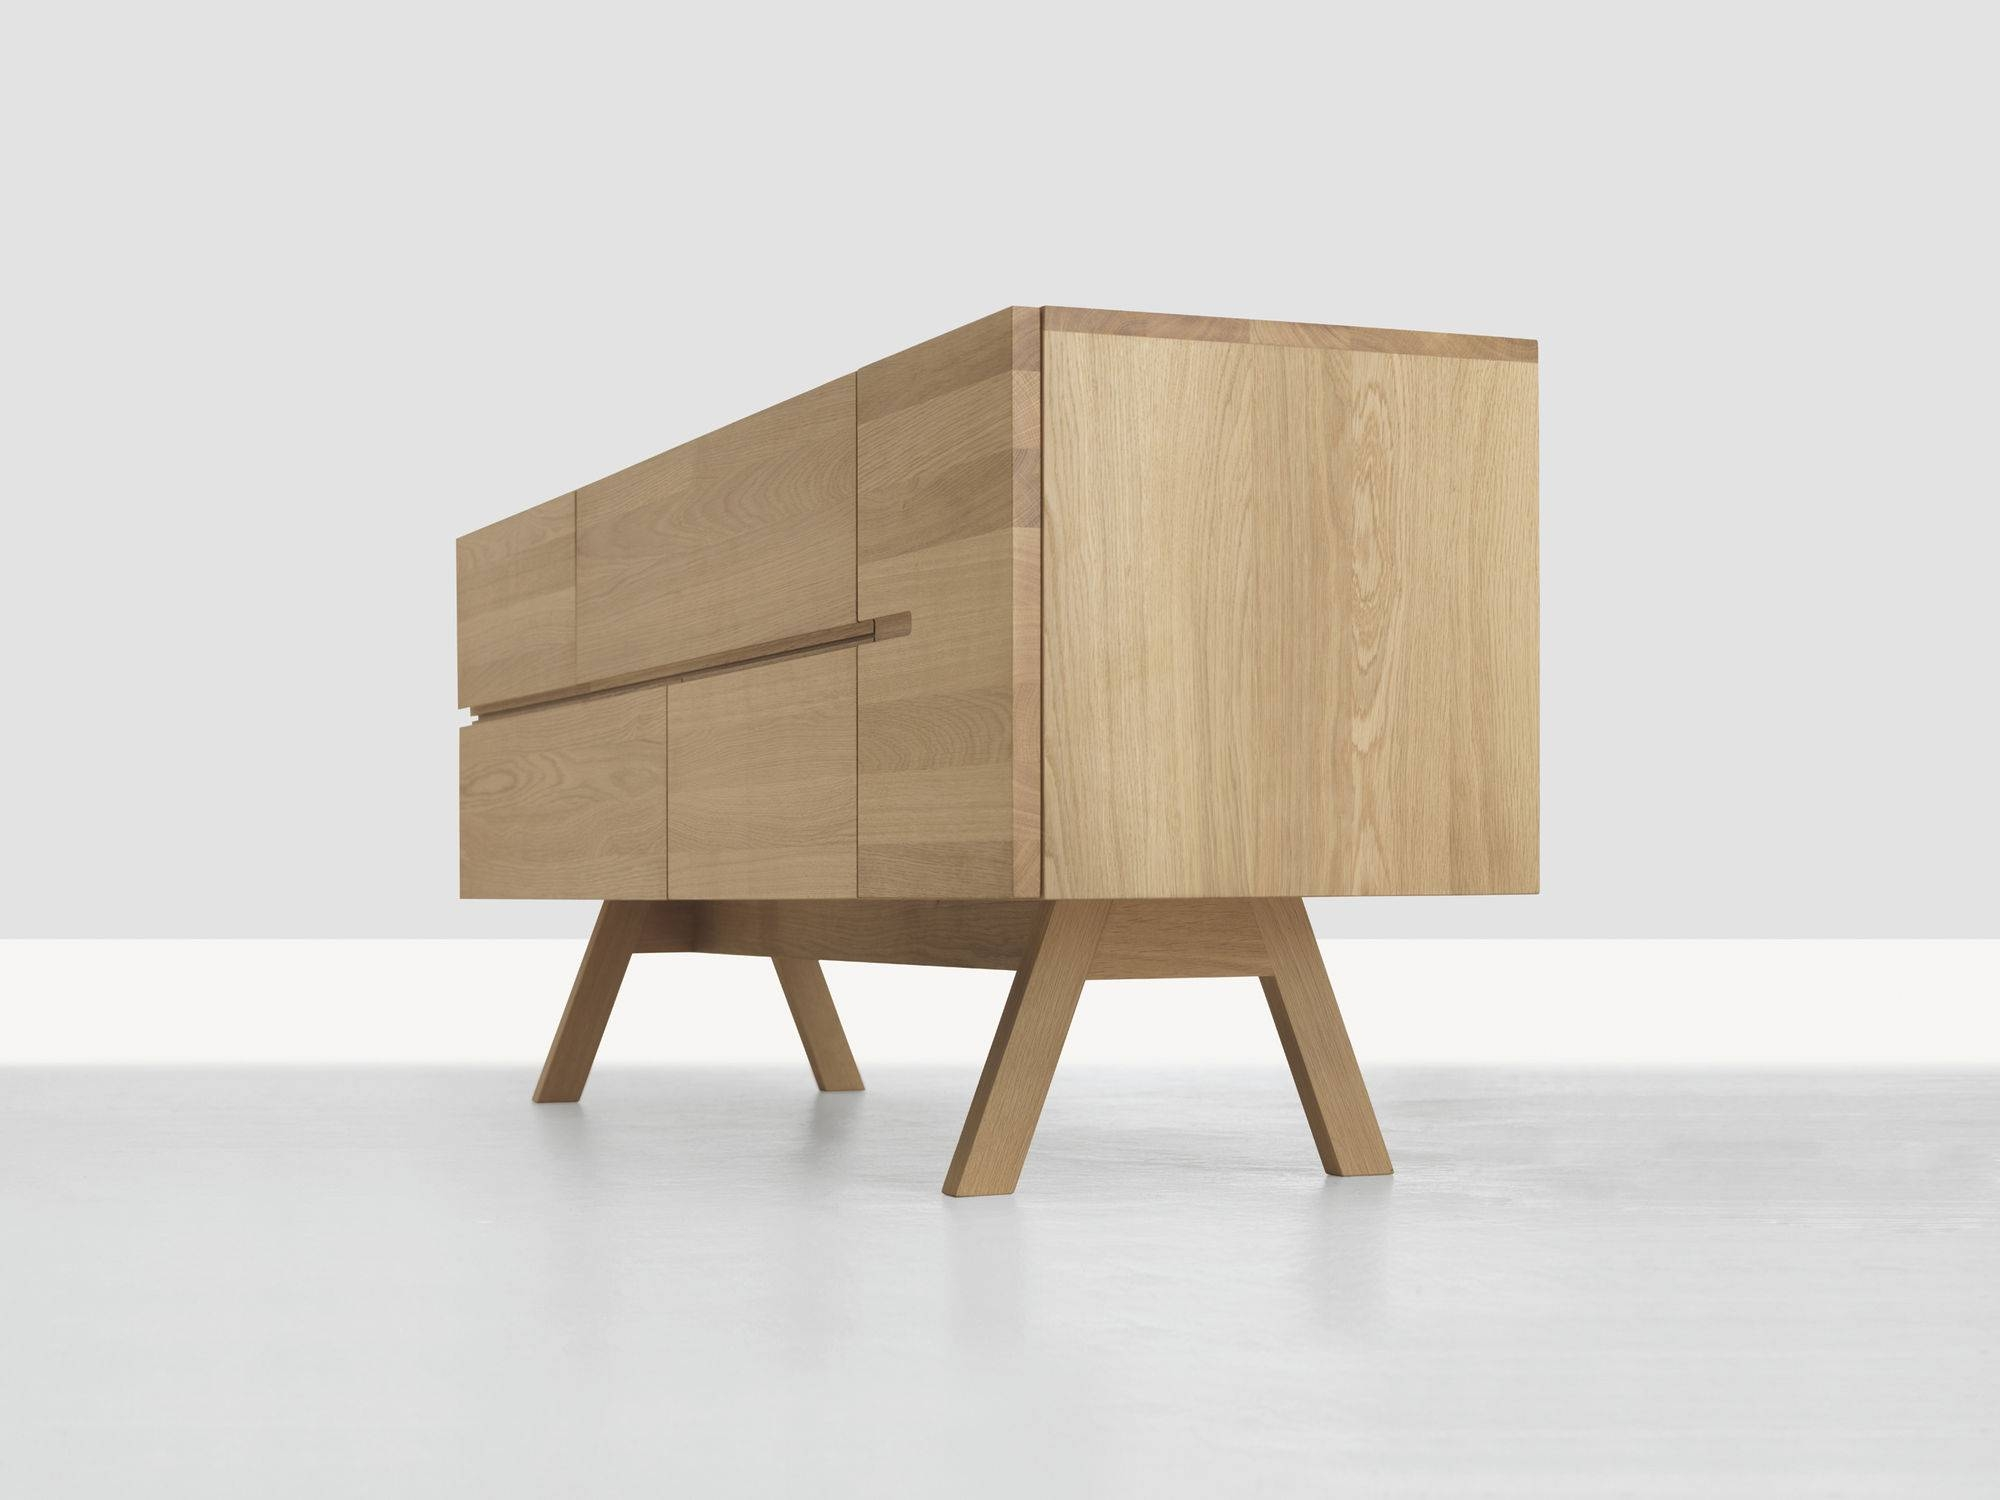 Contemporary Sideboard / Solid Wood – Low Atelierformstelle With Regard To Solid Wood Sideboards (View 10 of 15)